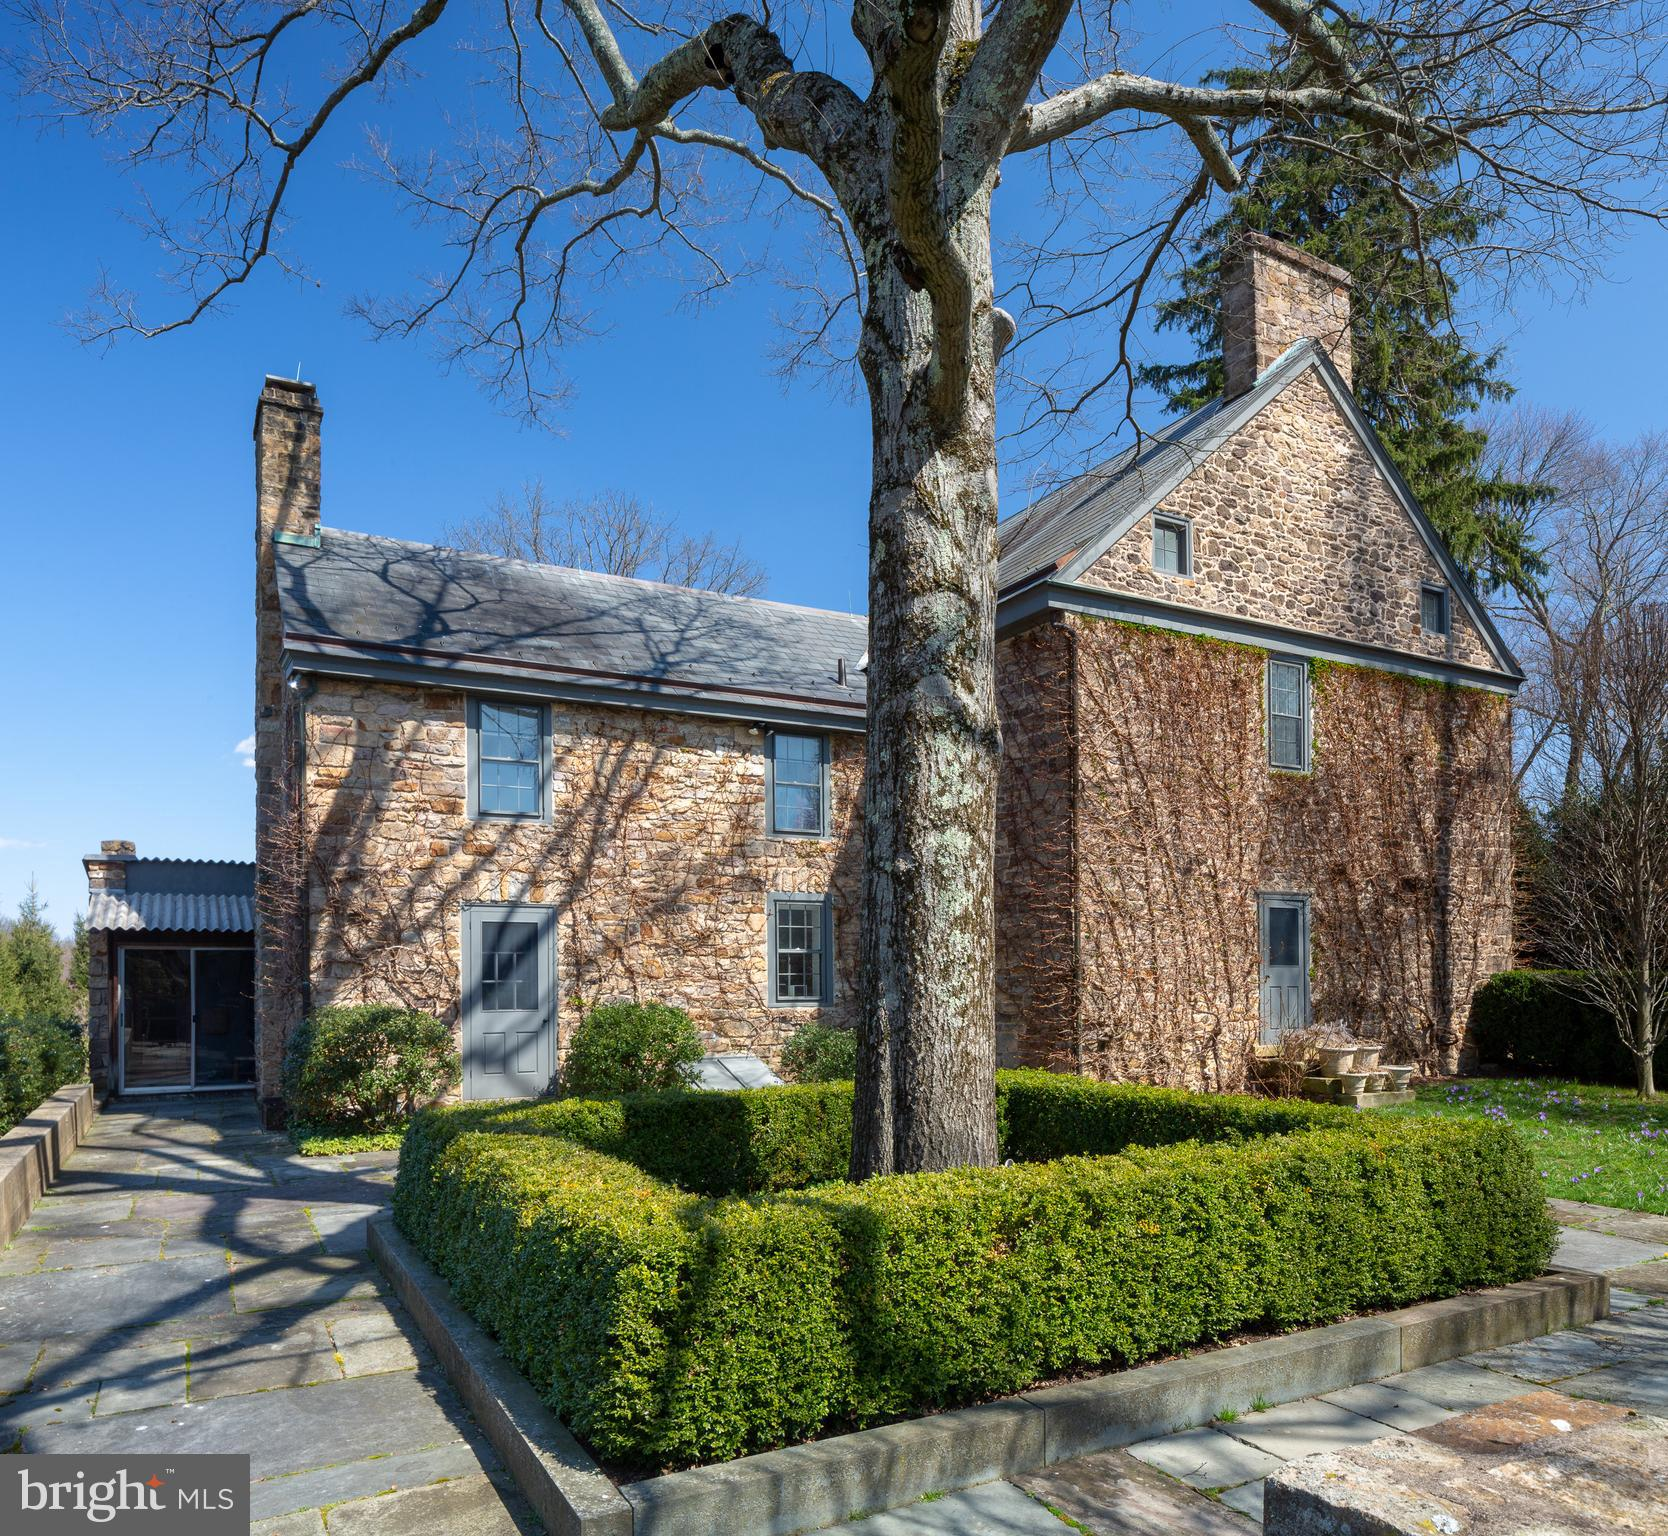 3539 HOLICONG ROAD, DOYLESTOWN, PA 18902